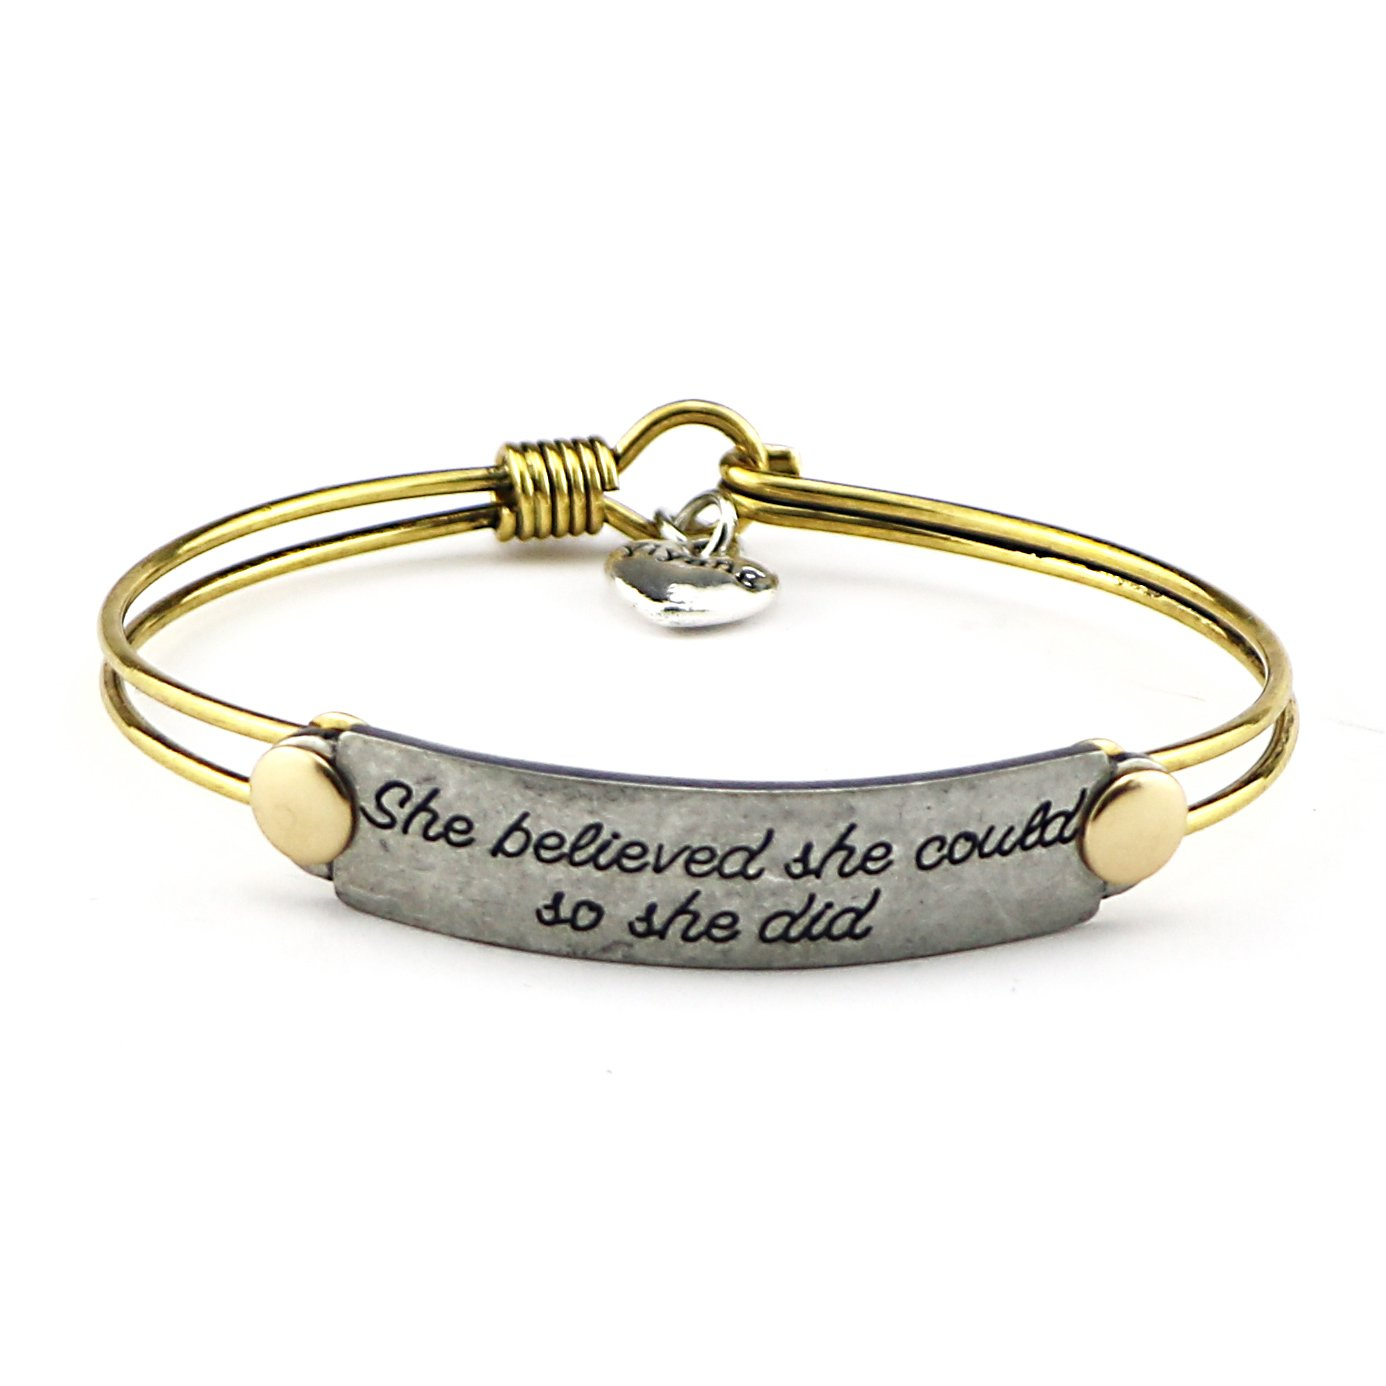 Yiyang Inspirational Handmade Brass Bangle Bracelet Motivational Quotes Engraved Adjustable Vintage Jewelry Gifts (She believed she could so she did)